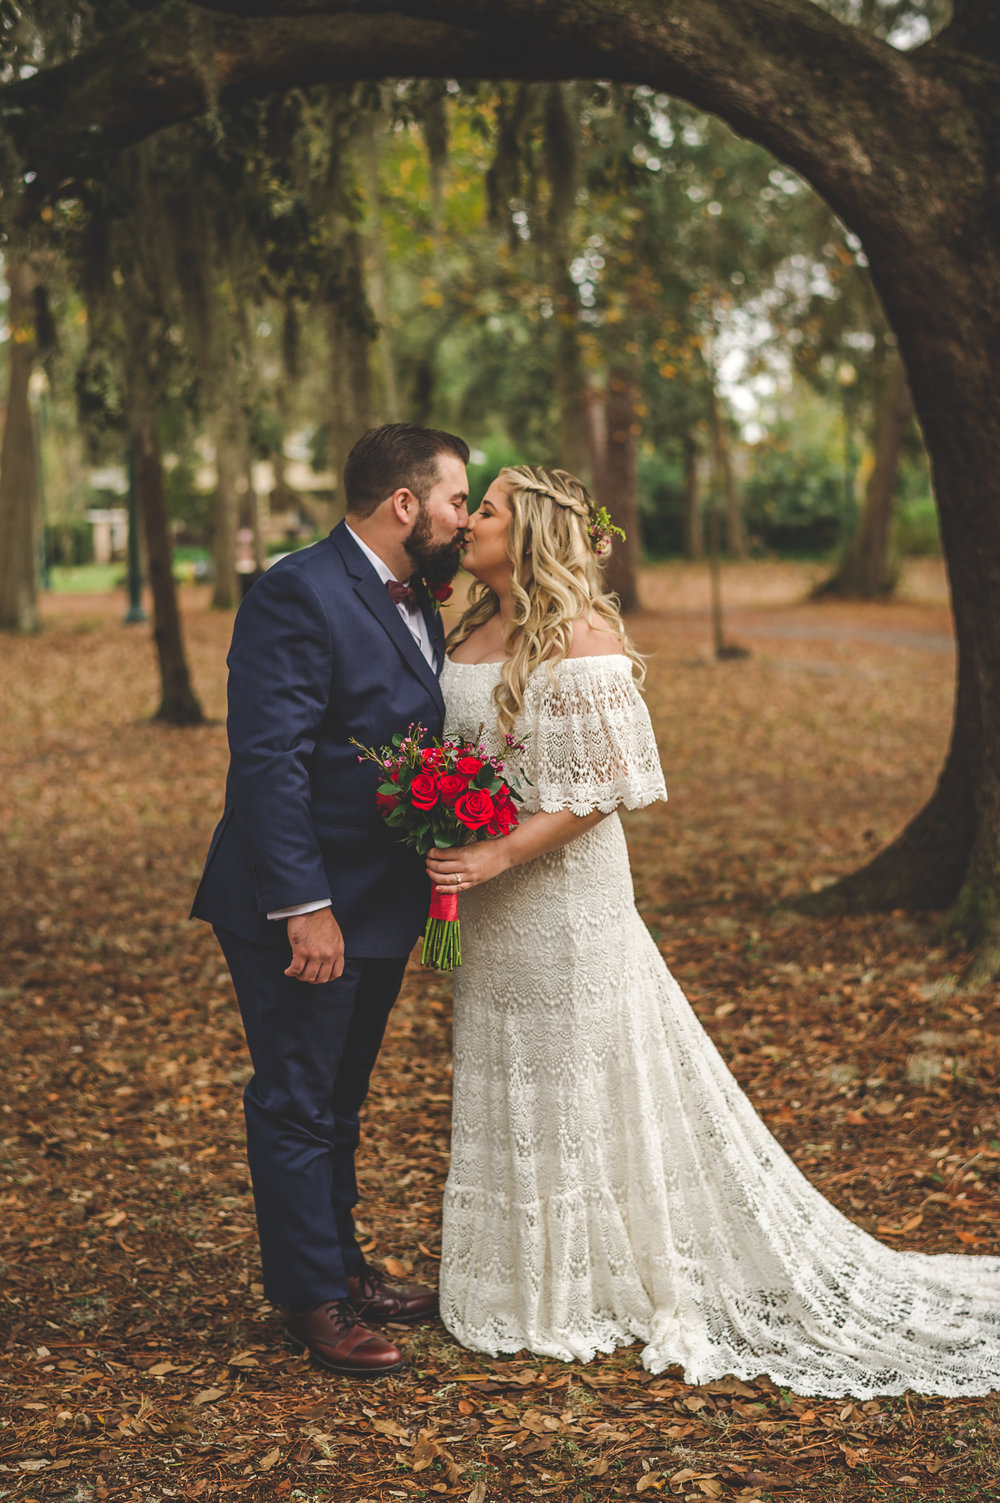 ivory-and-beau-bridal-boutique-savannah-wedding-gown-camille-daughters-of-simone-tyler-mckenzie-photography-boho-bride.jpg